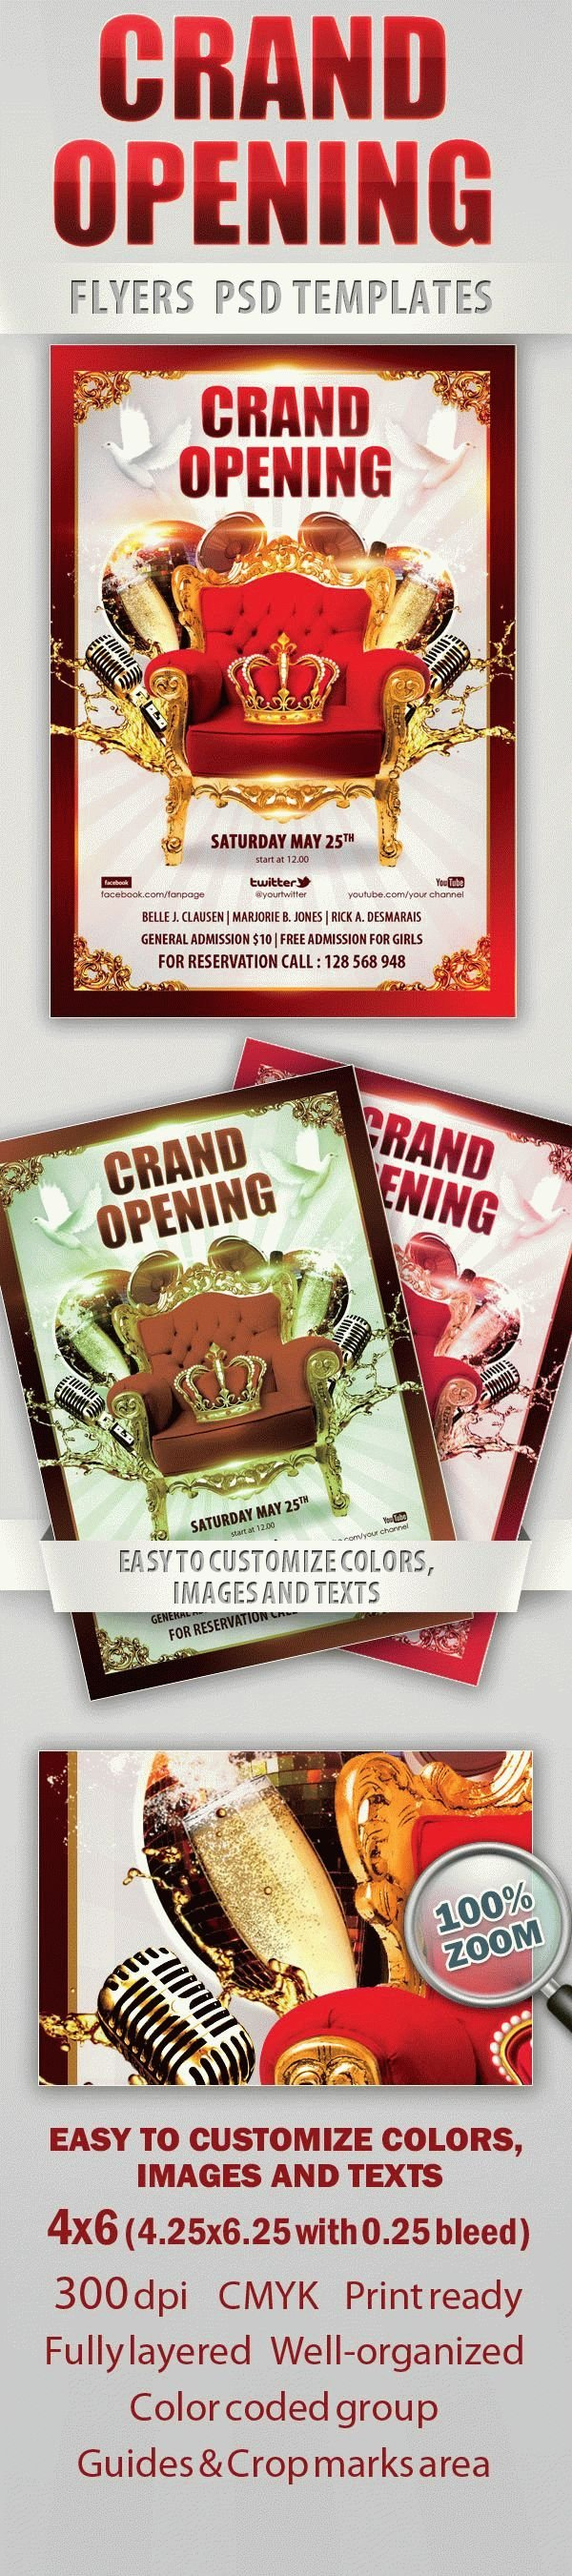 Grand Opening Party Free Flyer PSD Template